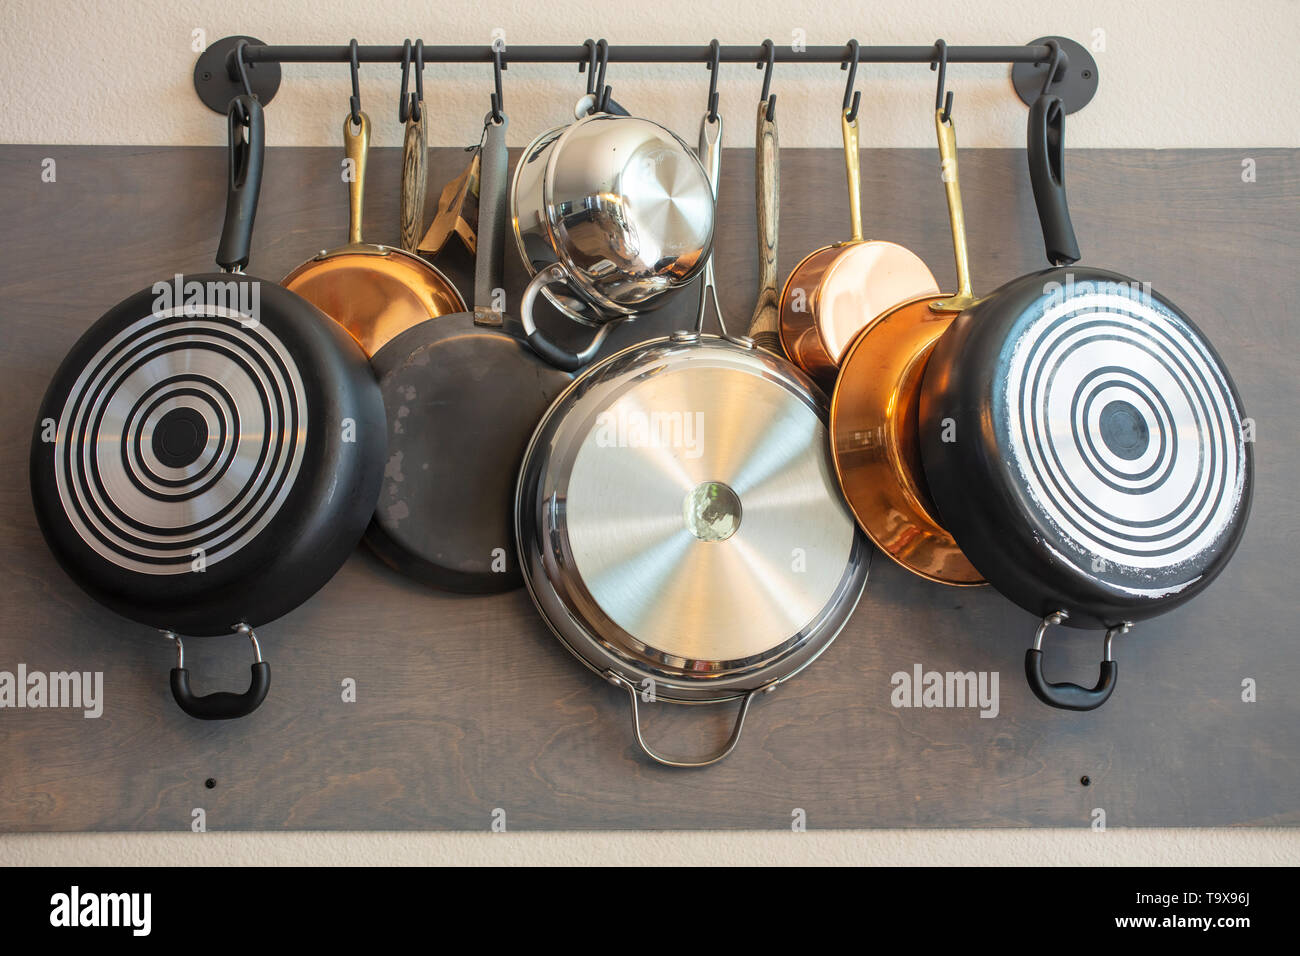 Kitchen Wall Rack For Hanging Pots Pans Aprons And Other Utensils For Efficient Organization Storage And Decor Stock Photo Alamy